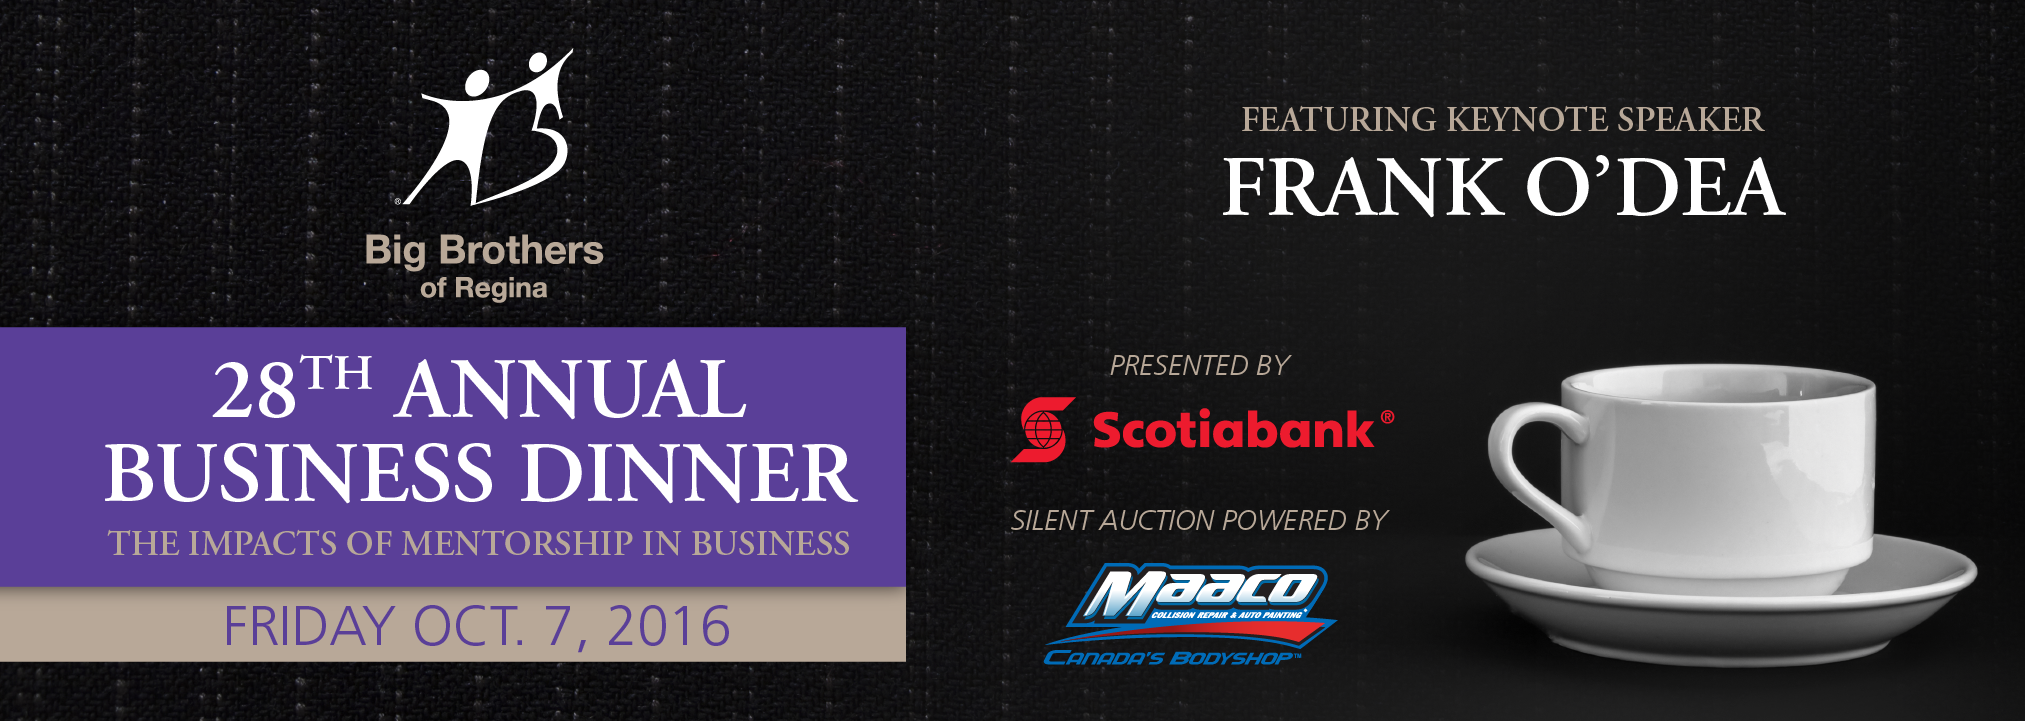 Big Brothers of Regina 28th Annual Business Dinner and Auction